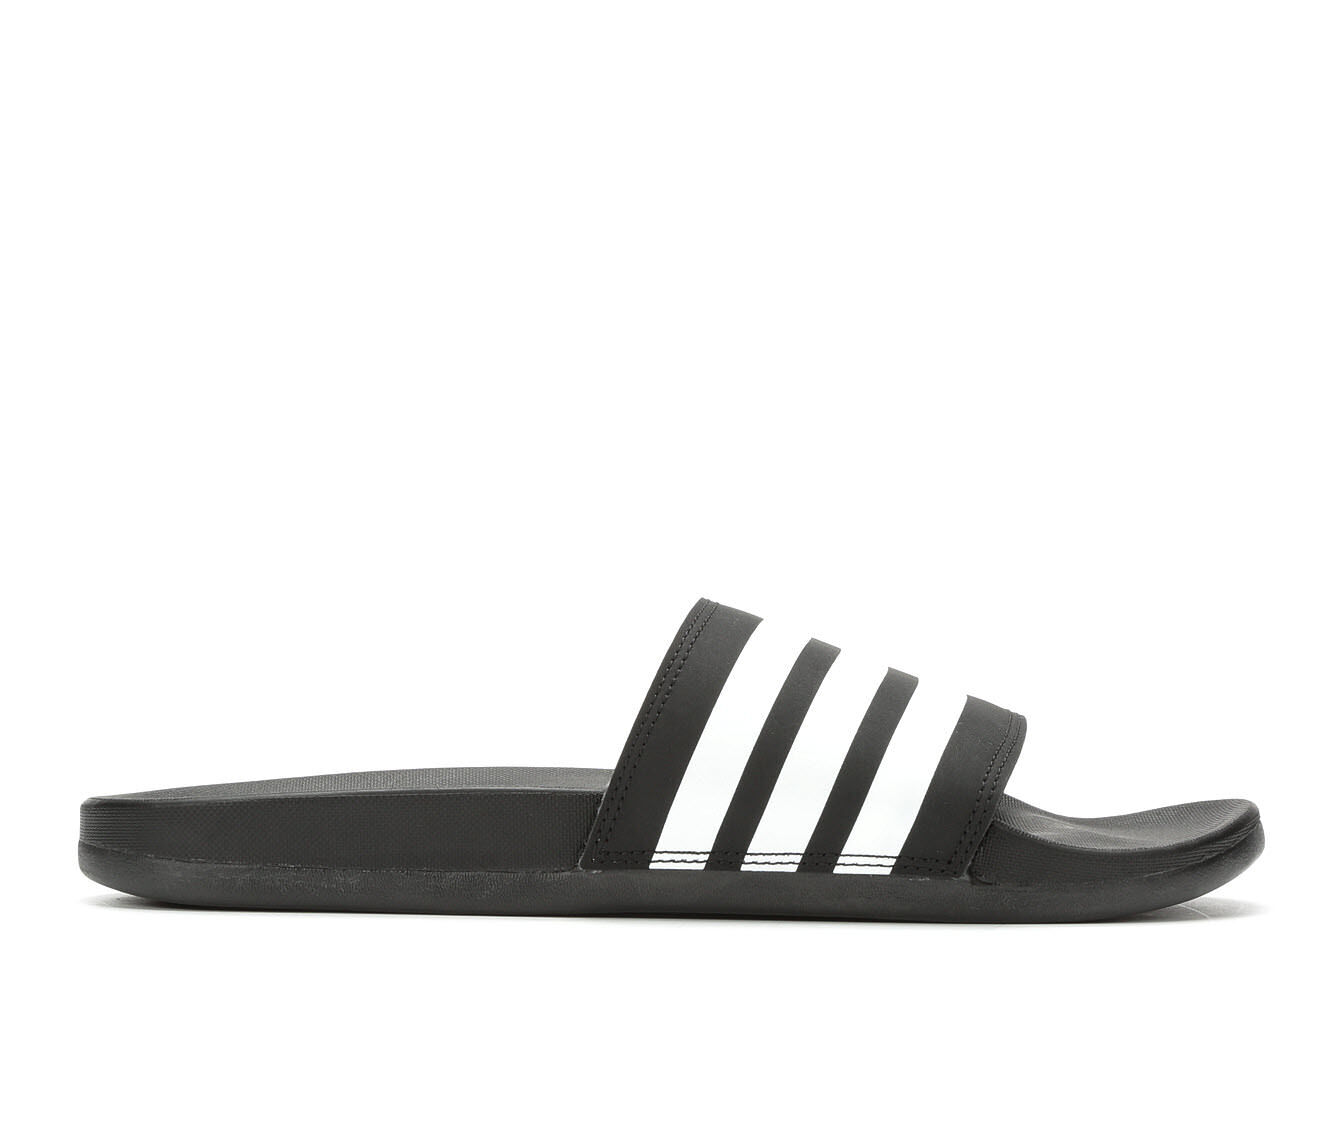 comfortable sale online footlocker pictures Men's Adidas Adilette Cloudfoam Plus Sport Slides wholesale online 8mJ6OCtlWR